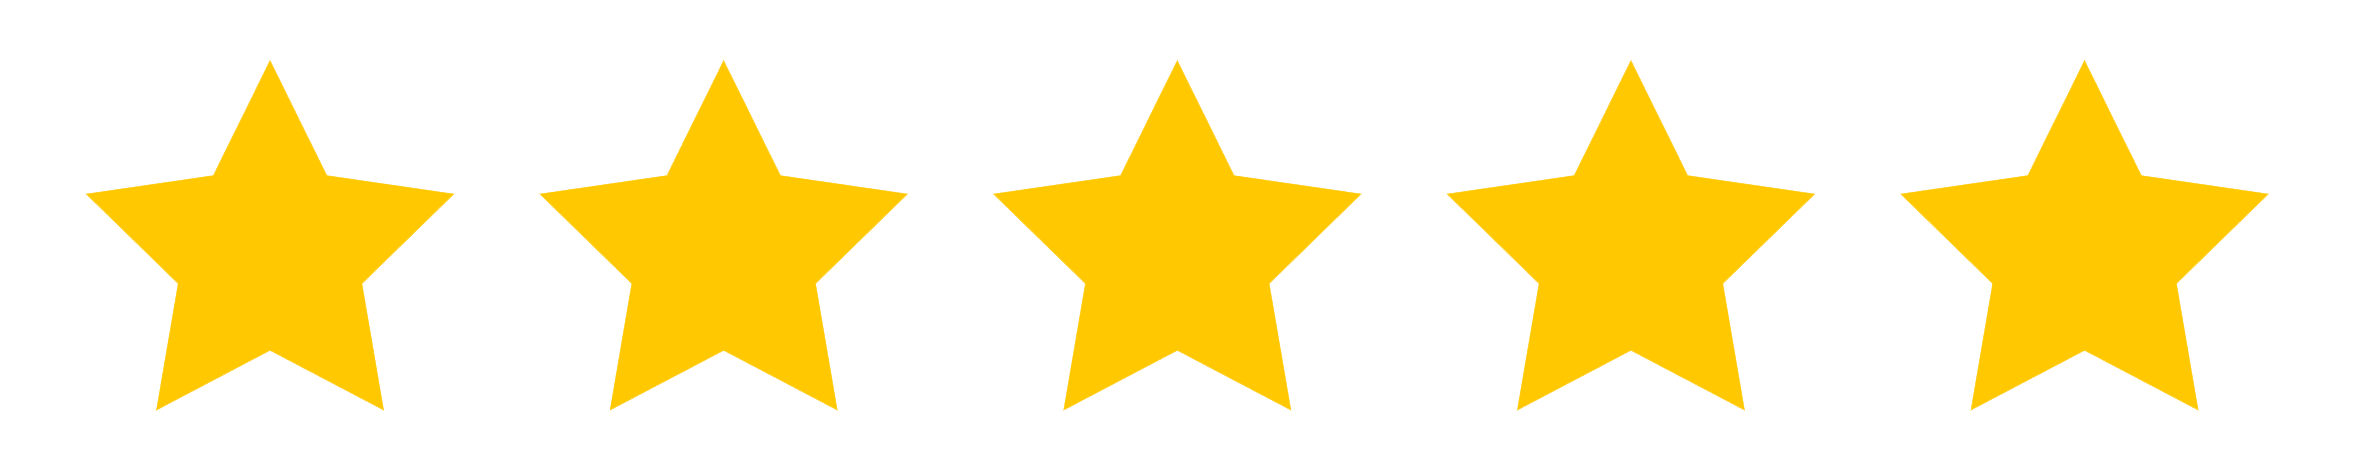 Reviews star rating from Diane C. for A-1 Self Storage in Cypress, California